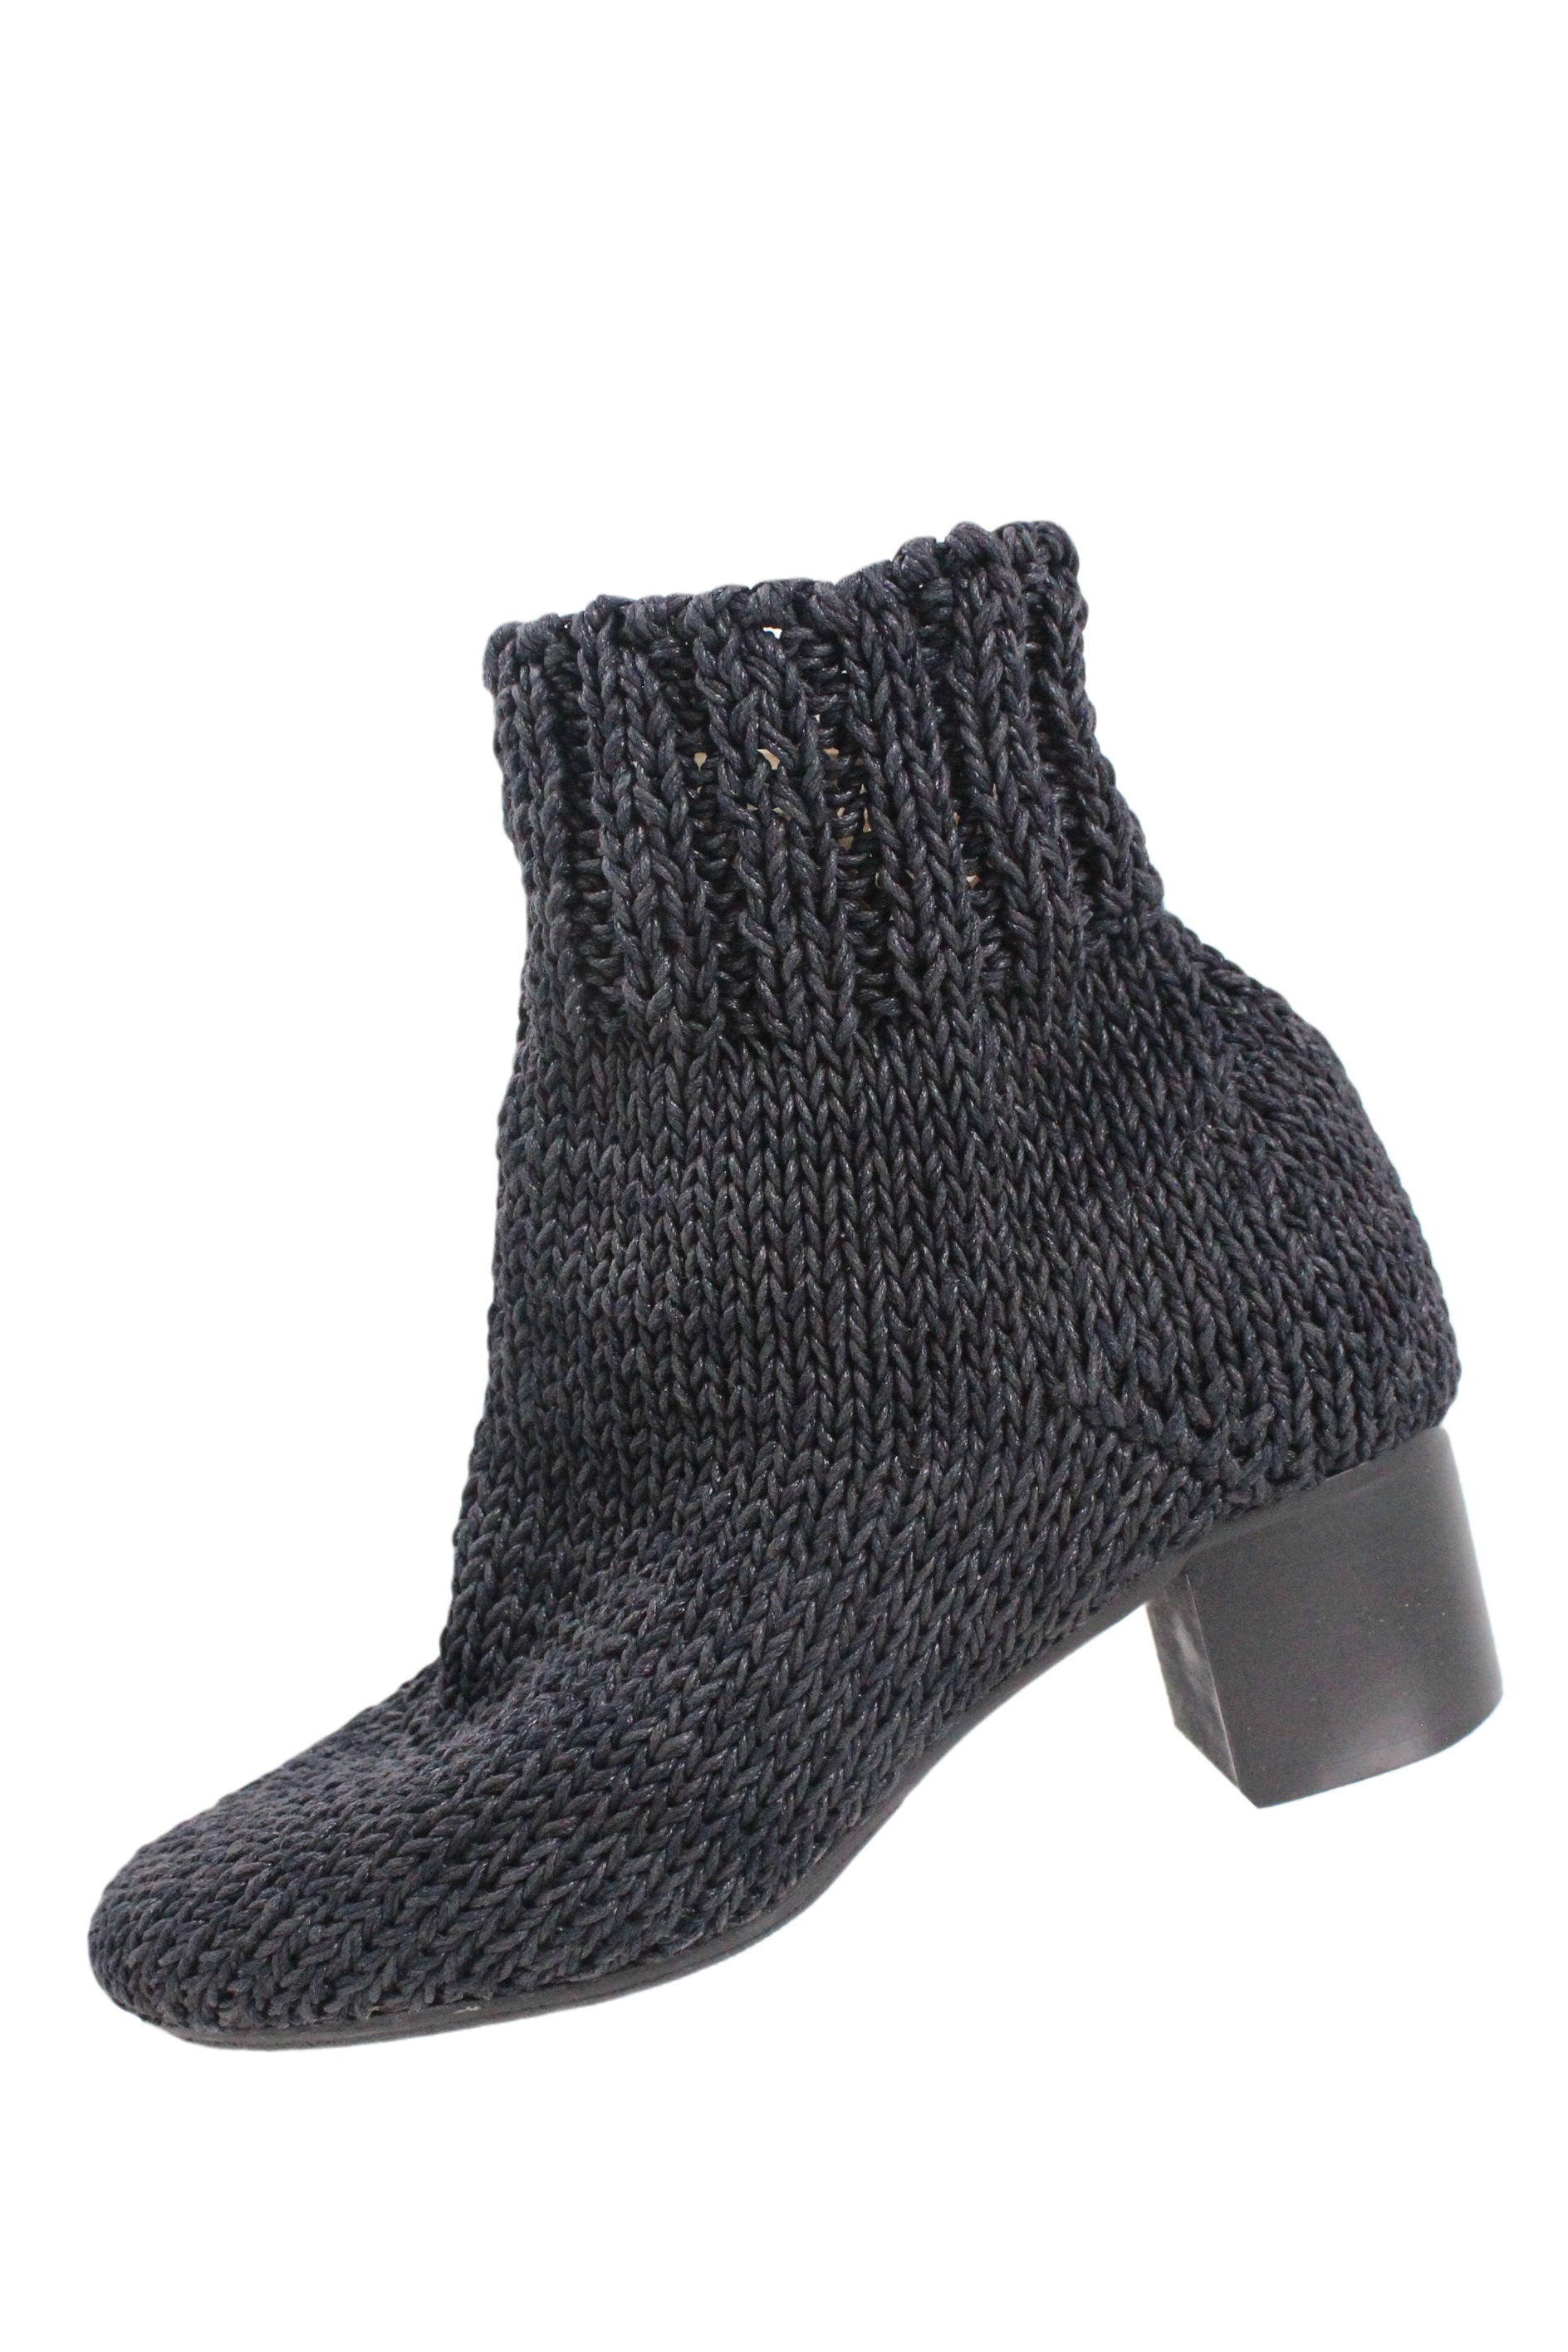 bless charcoal 'eram' round toe knitted booties. featuring coated yarn, partial inner reinforcement, wooden block heel, and vibram reinforced outsole.